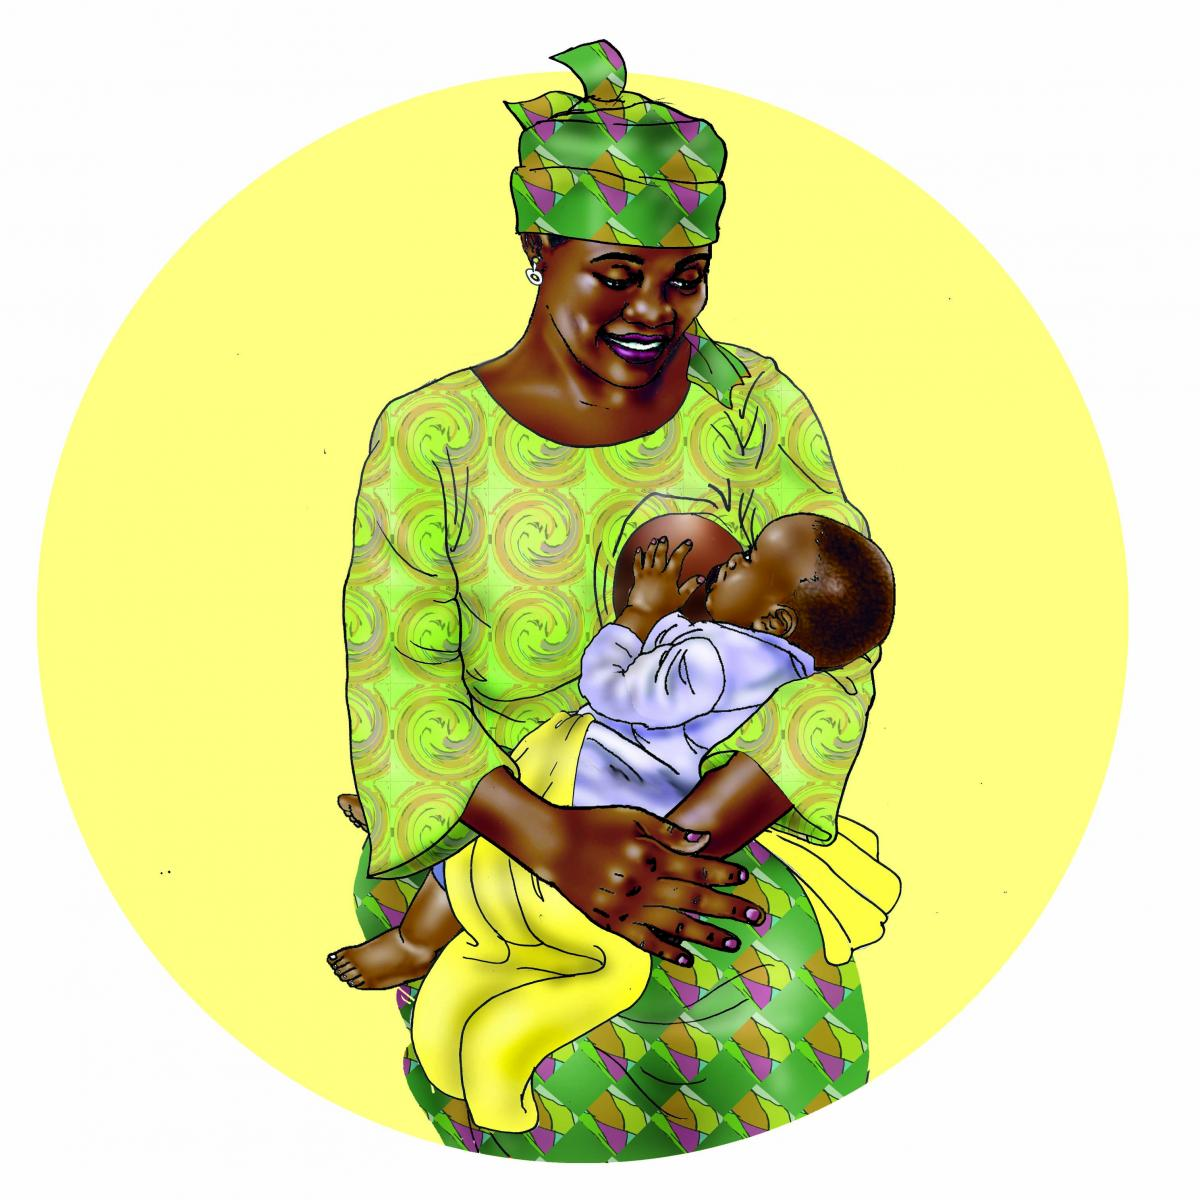 Breastfeeding - Exclusive breastfeeding 6-9 mo - 00A - Benin